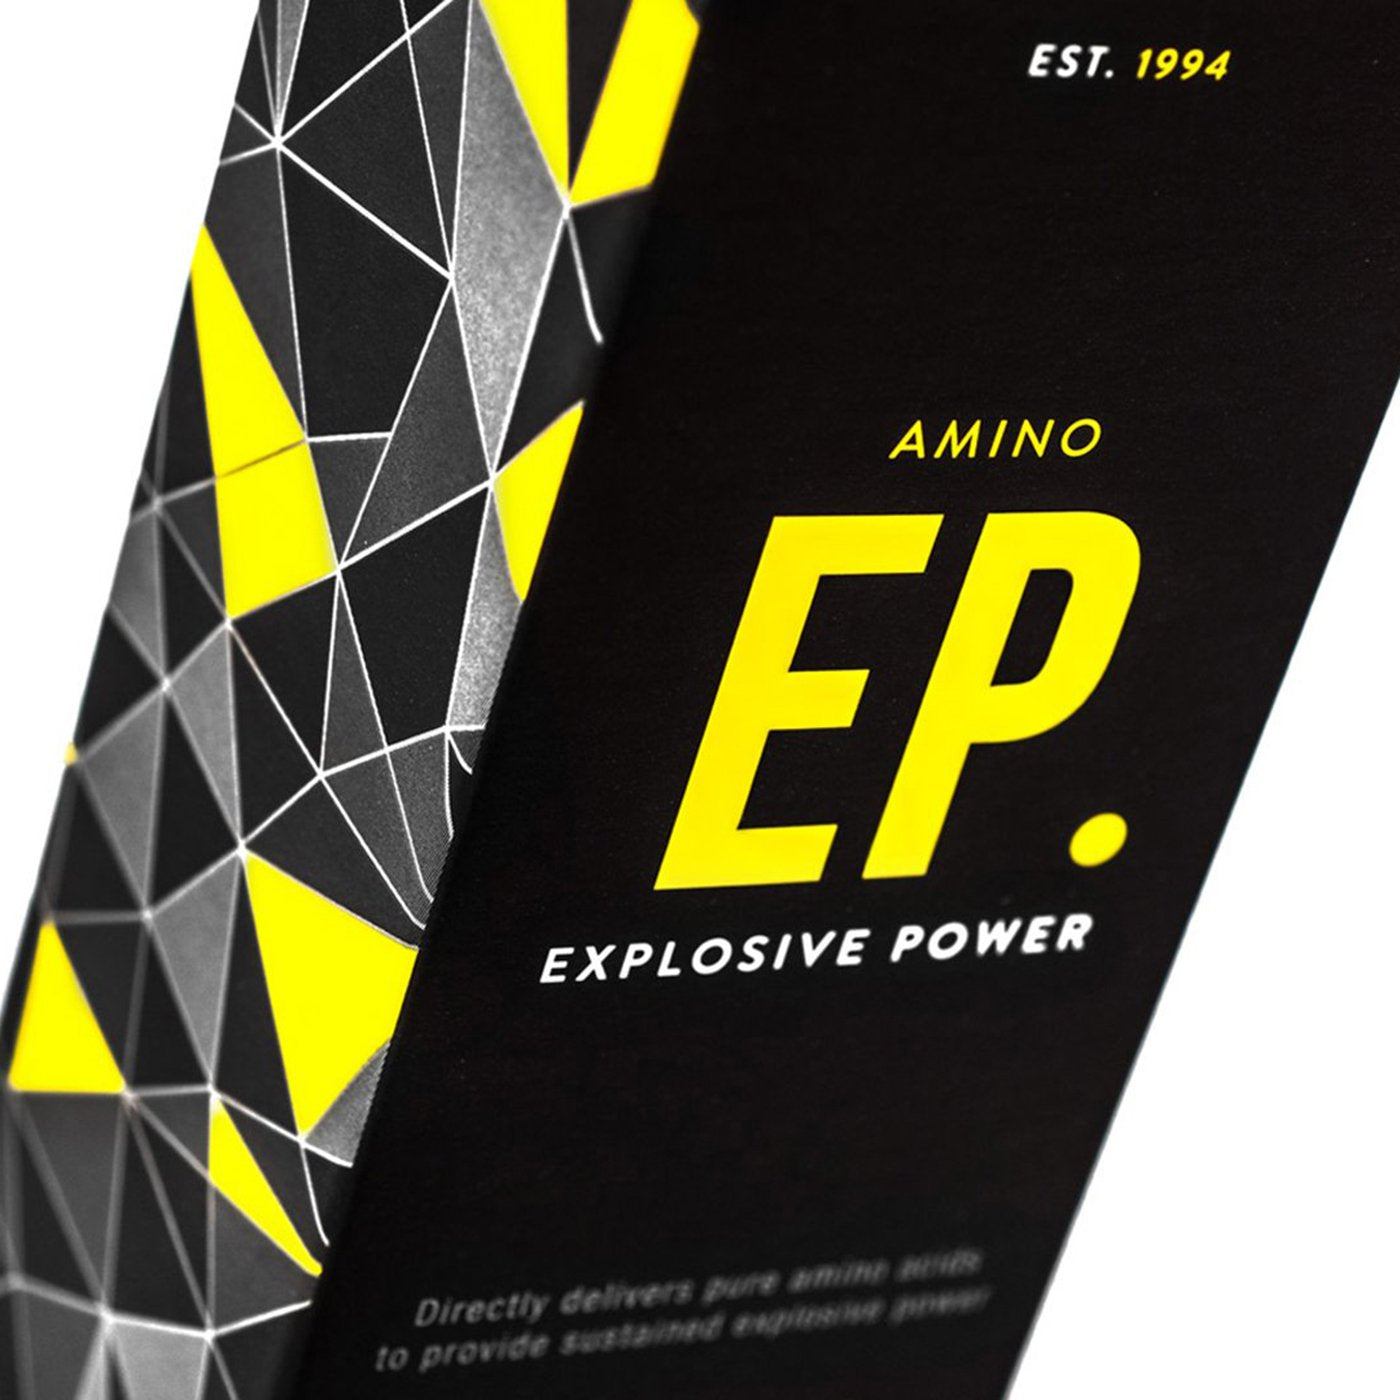 Amino Explosive Power - Muc-Off